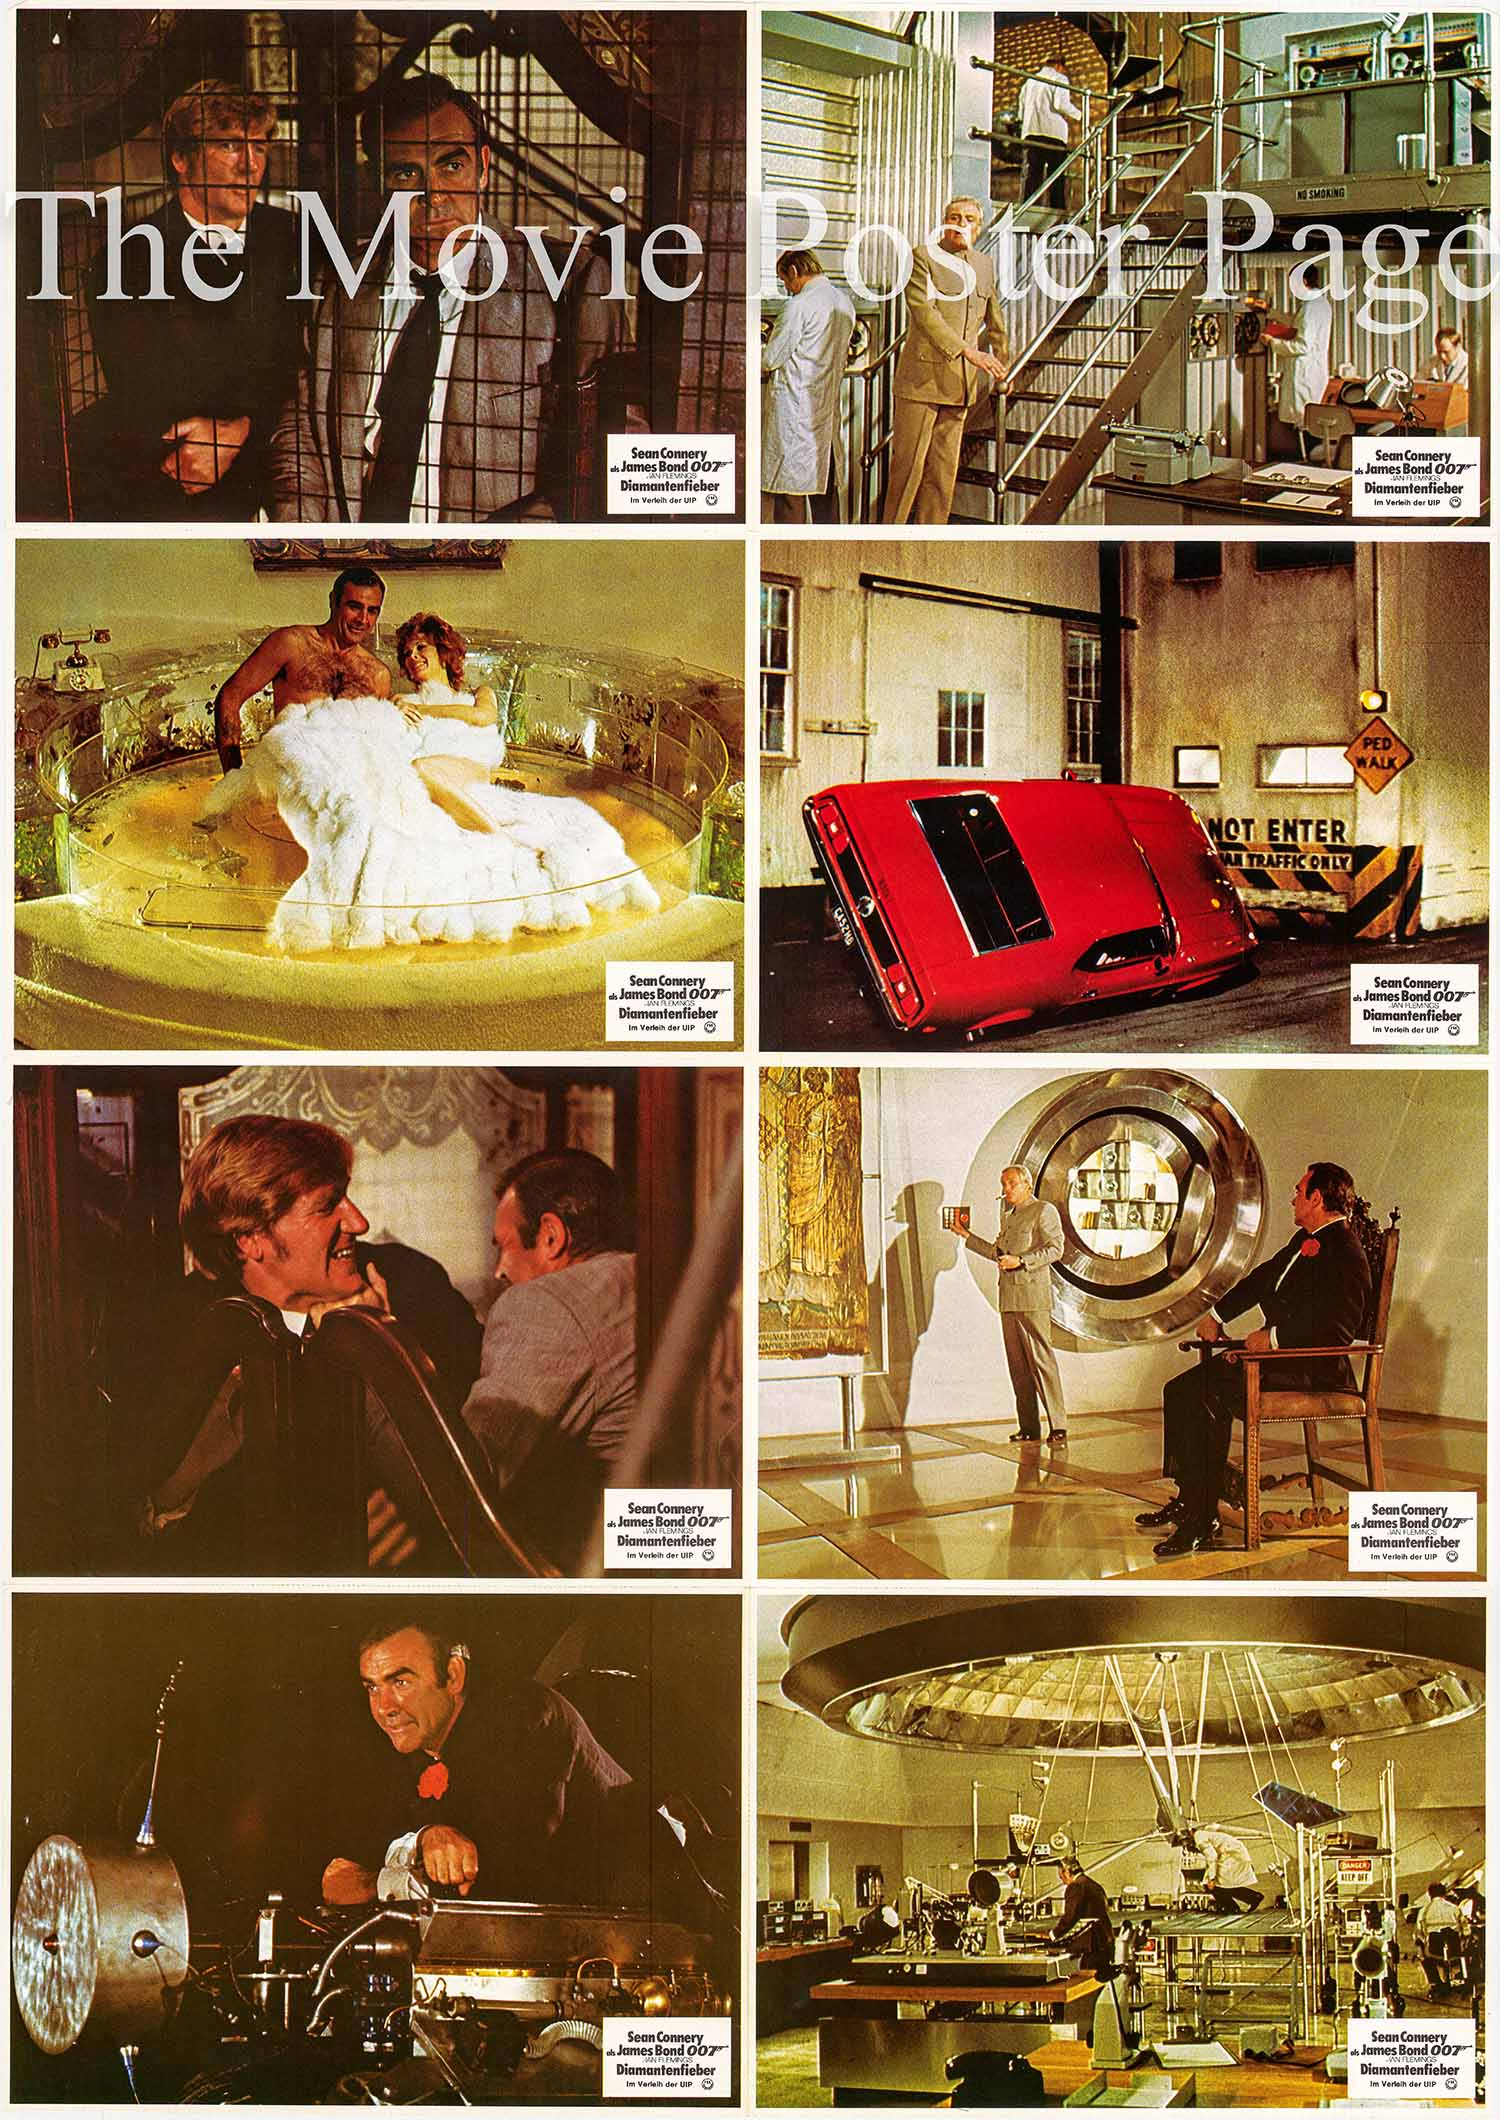 Pictured is a German perforated lobby sheet for a 1980s rerelease of the 1971 Guy Hamilton film Diamonds are Forever starring Sean Connery as James Bond.